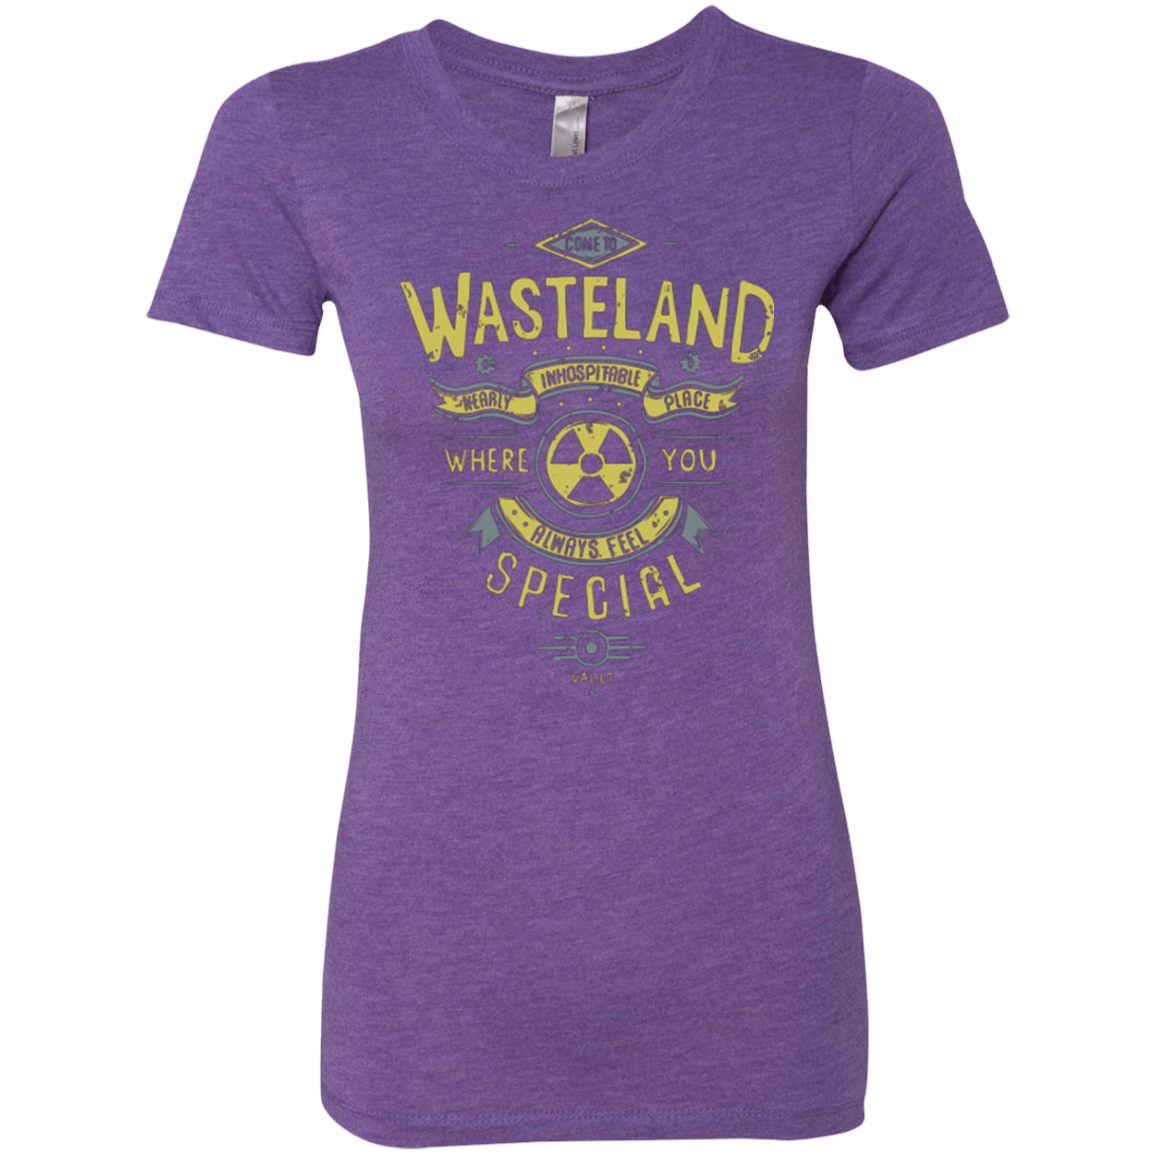 T-Shirts Purple Rush / Small Come to wasteland Women's Triblend T-Shirt